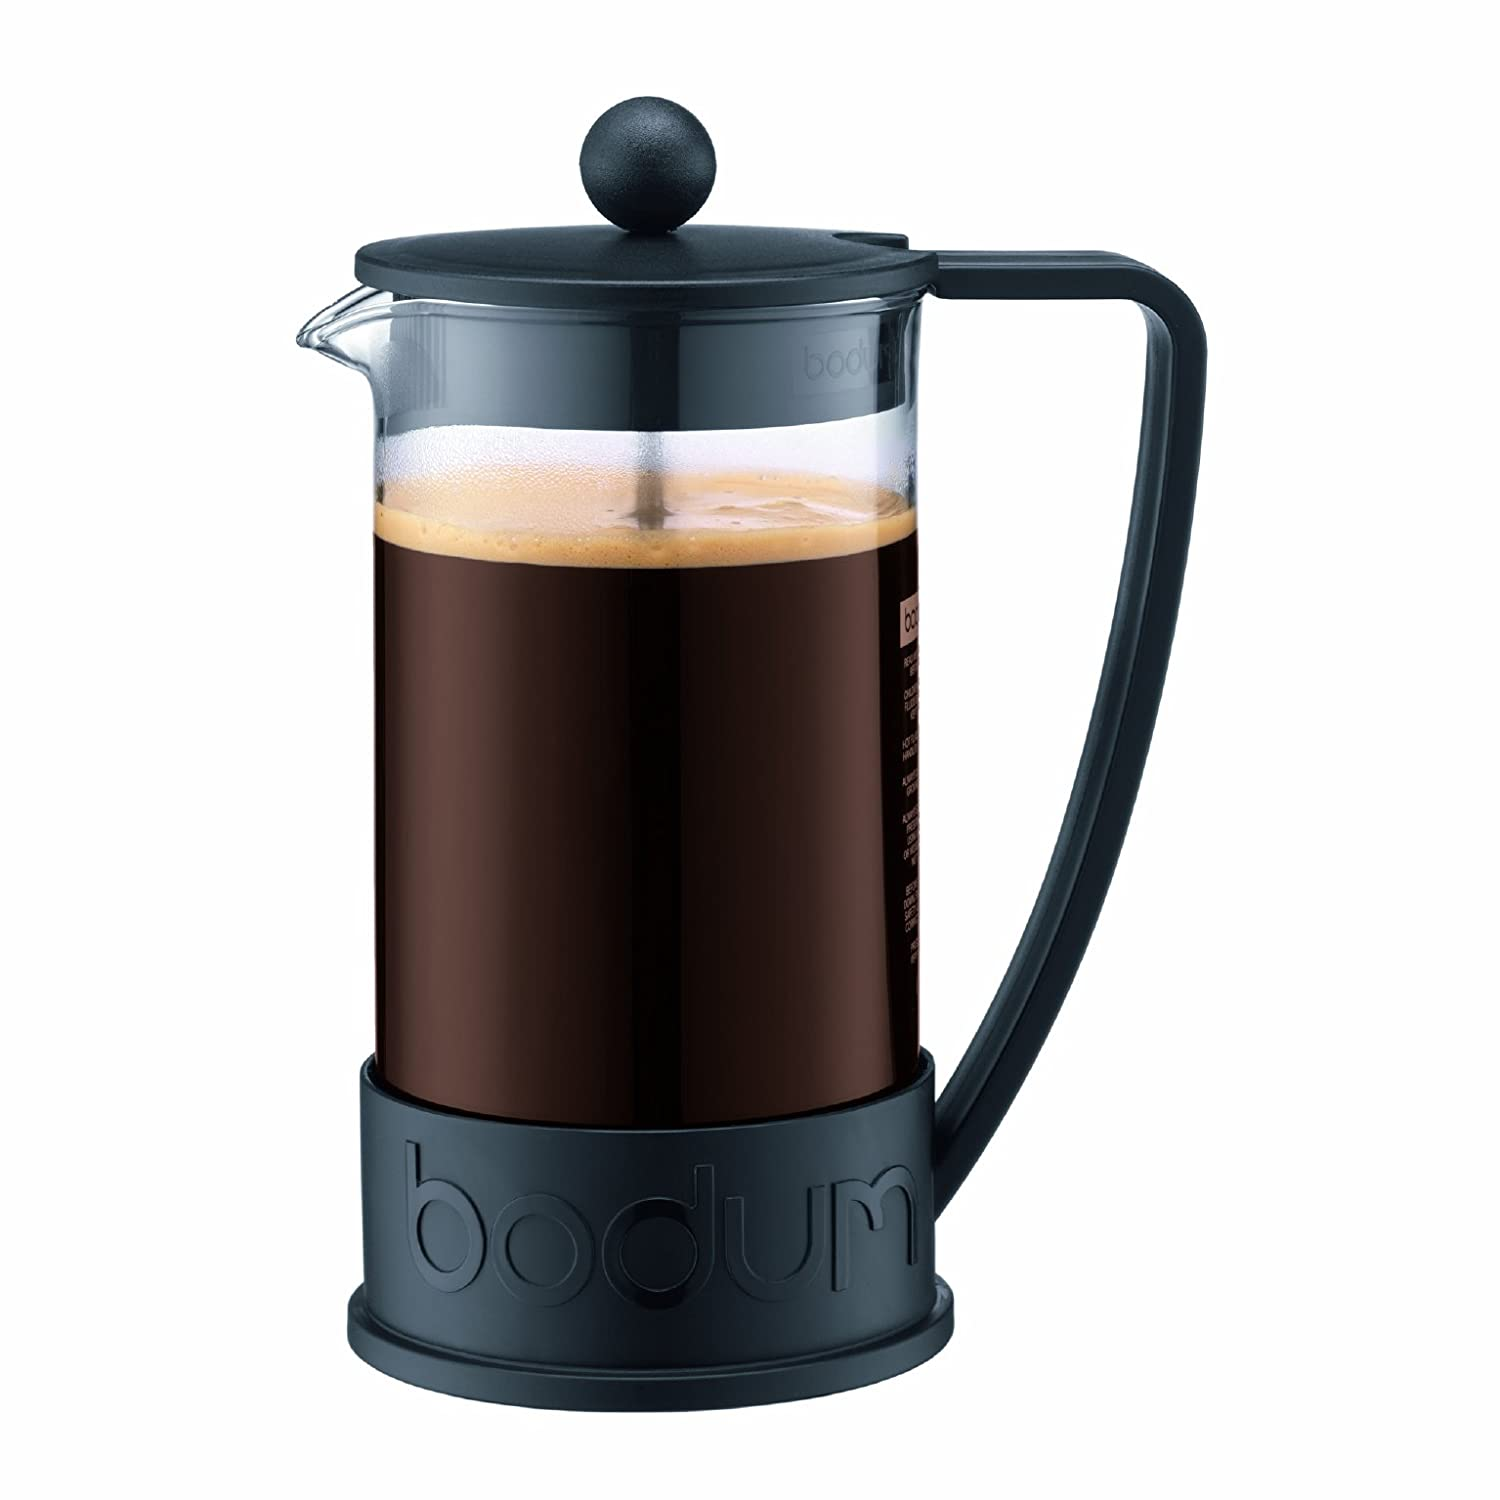 BODUM Brazil 3 Cup French Press Coffee Maker, Off White, 0.35 l, 12 oz 10948-913 BRAZIL Coffee press 0.35l Coffee_Tea_Accessories